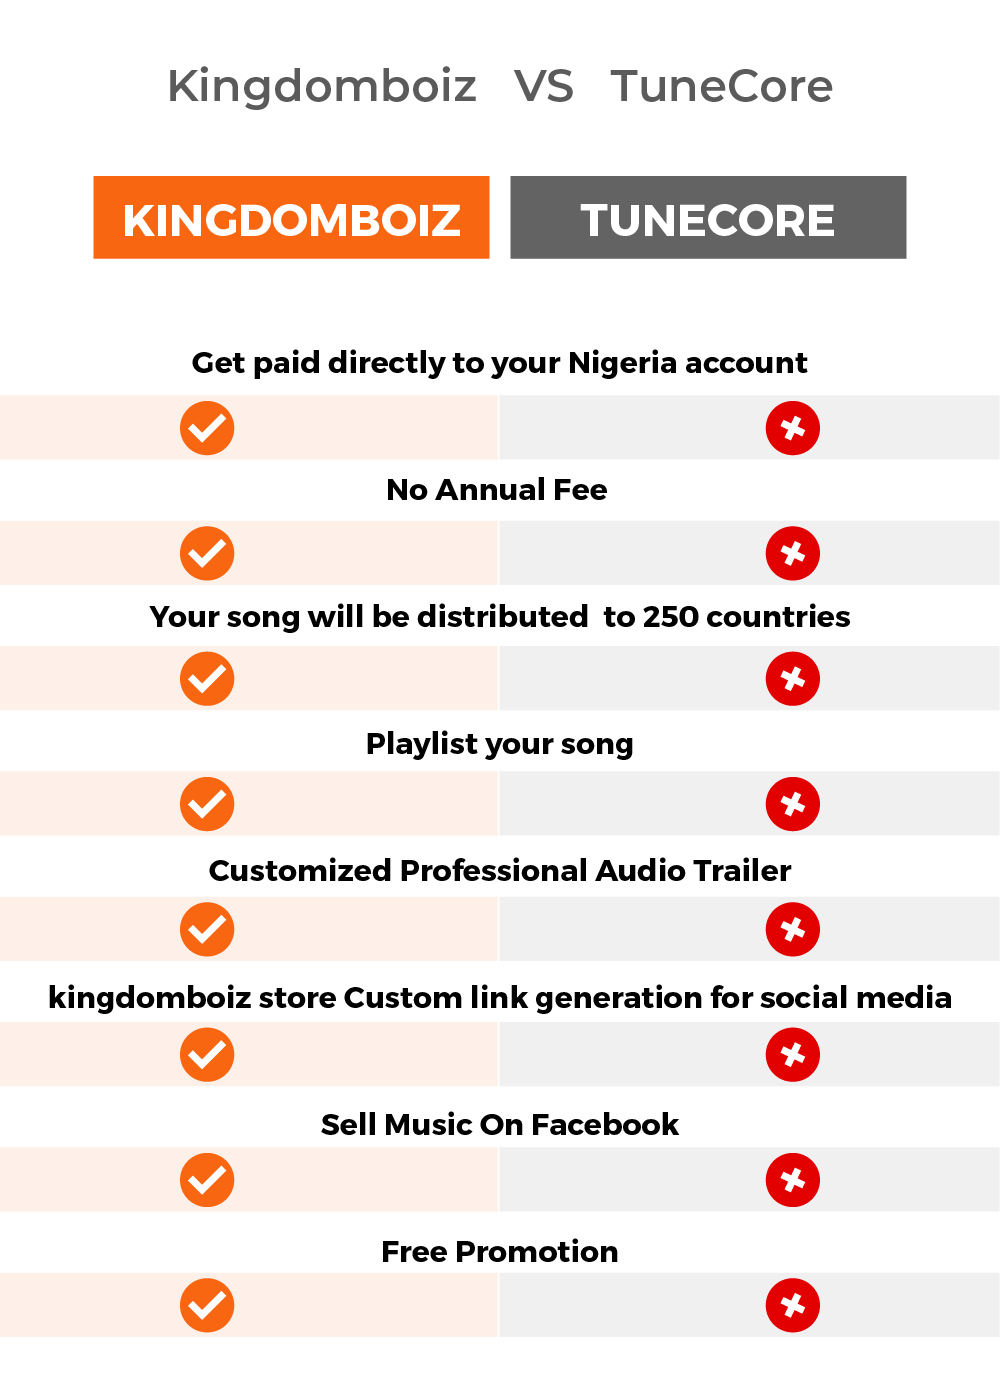 See Why Kingdomboiz Store Is Better Than Tunecore Or Any Other Distribution Platform